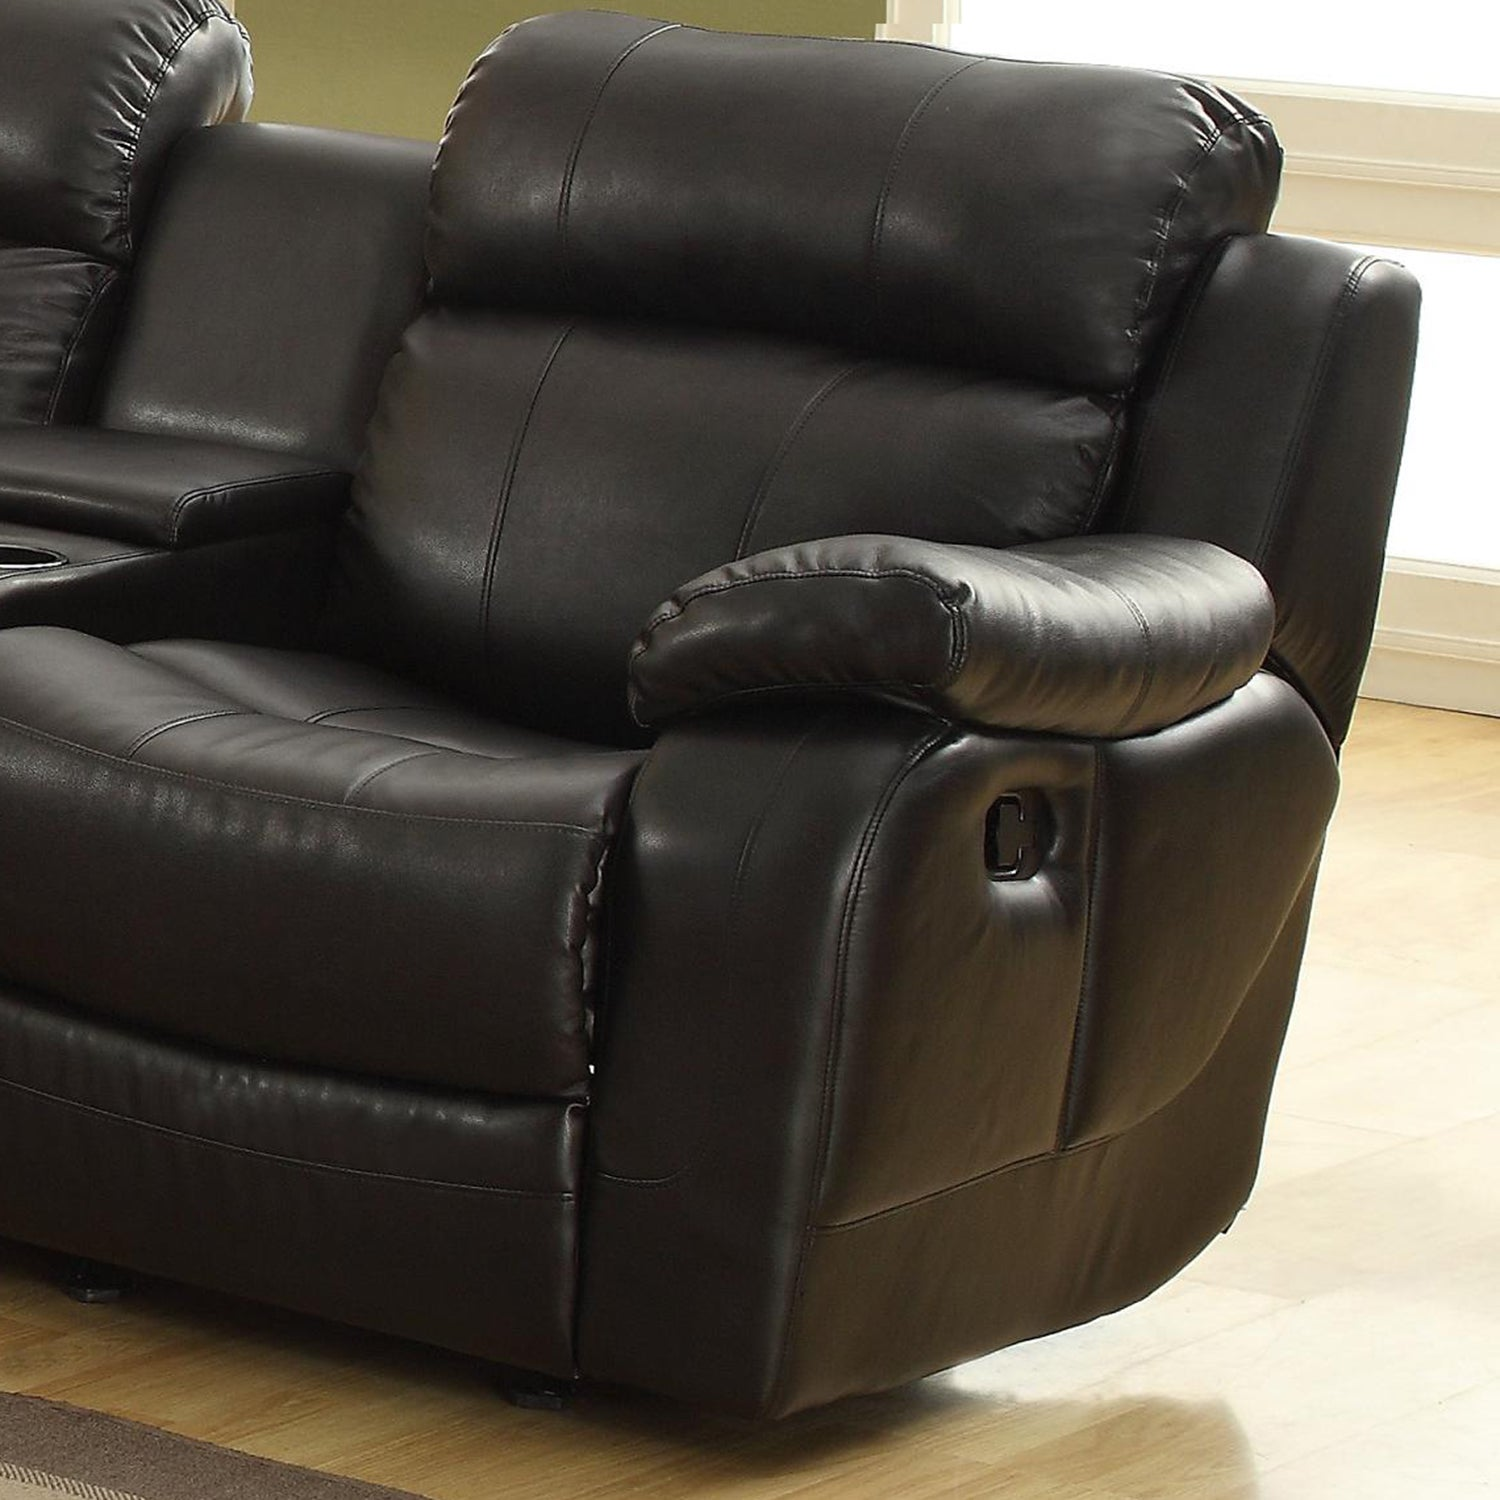 Eland Black Bonded Leather Sofa Set by iNSPIRE Q Classic Free